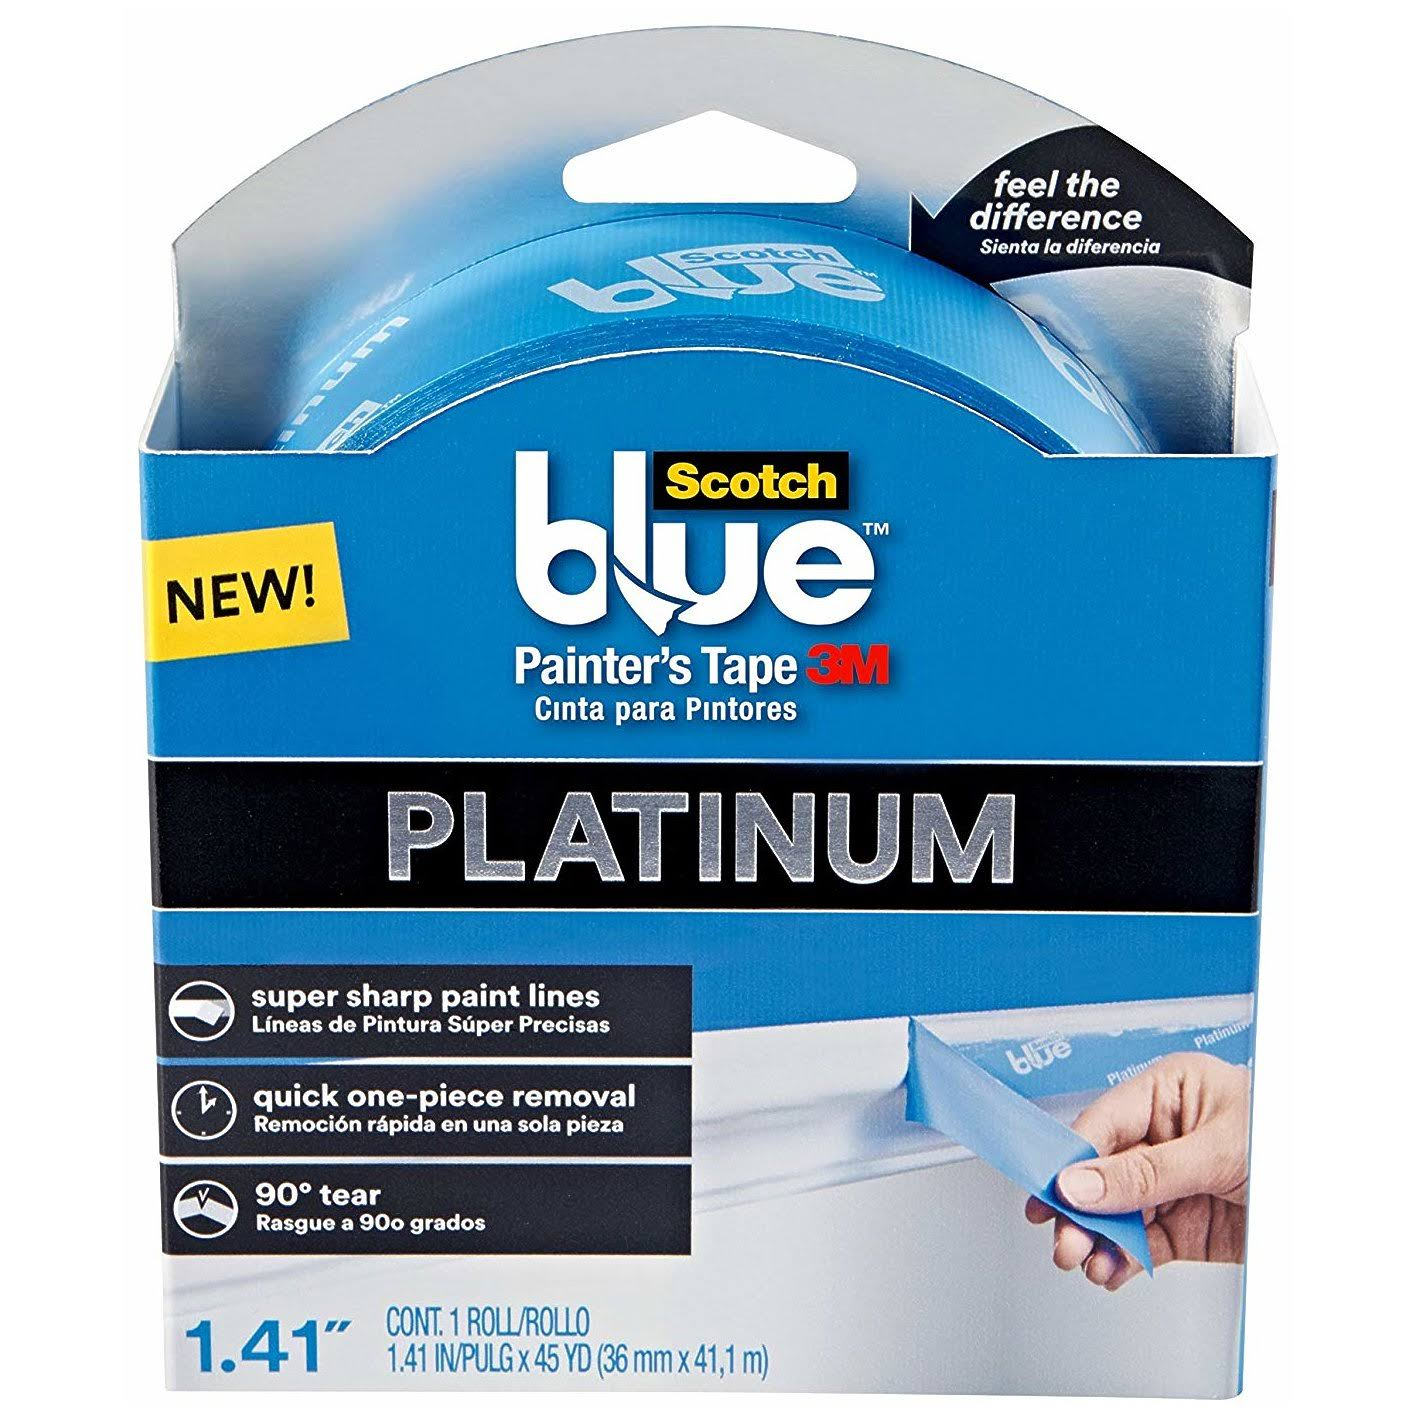 "3M Scotch Platinum Painter's Tape - 1.41"" x 45 Yards, Blue"